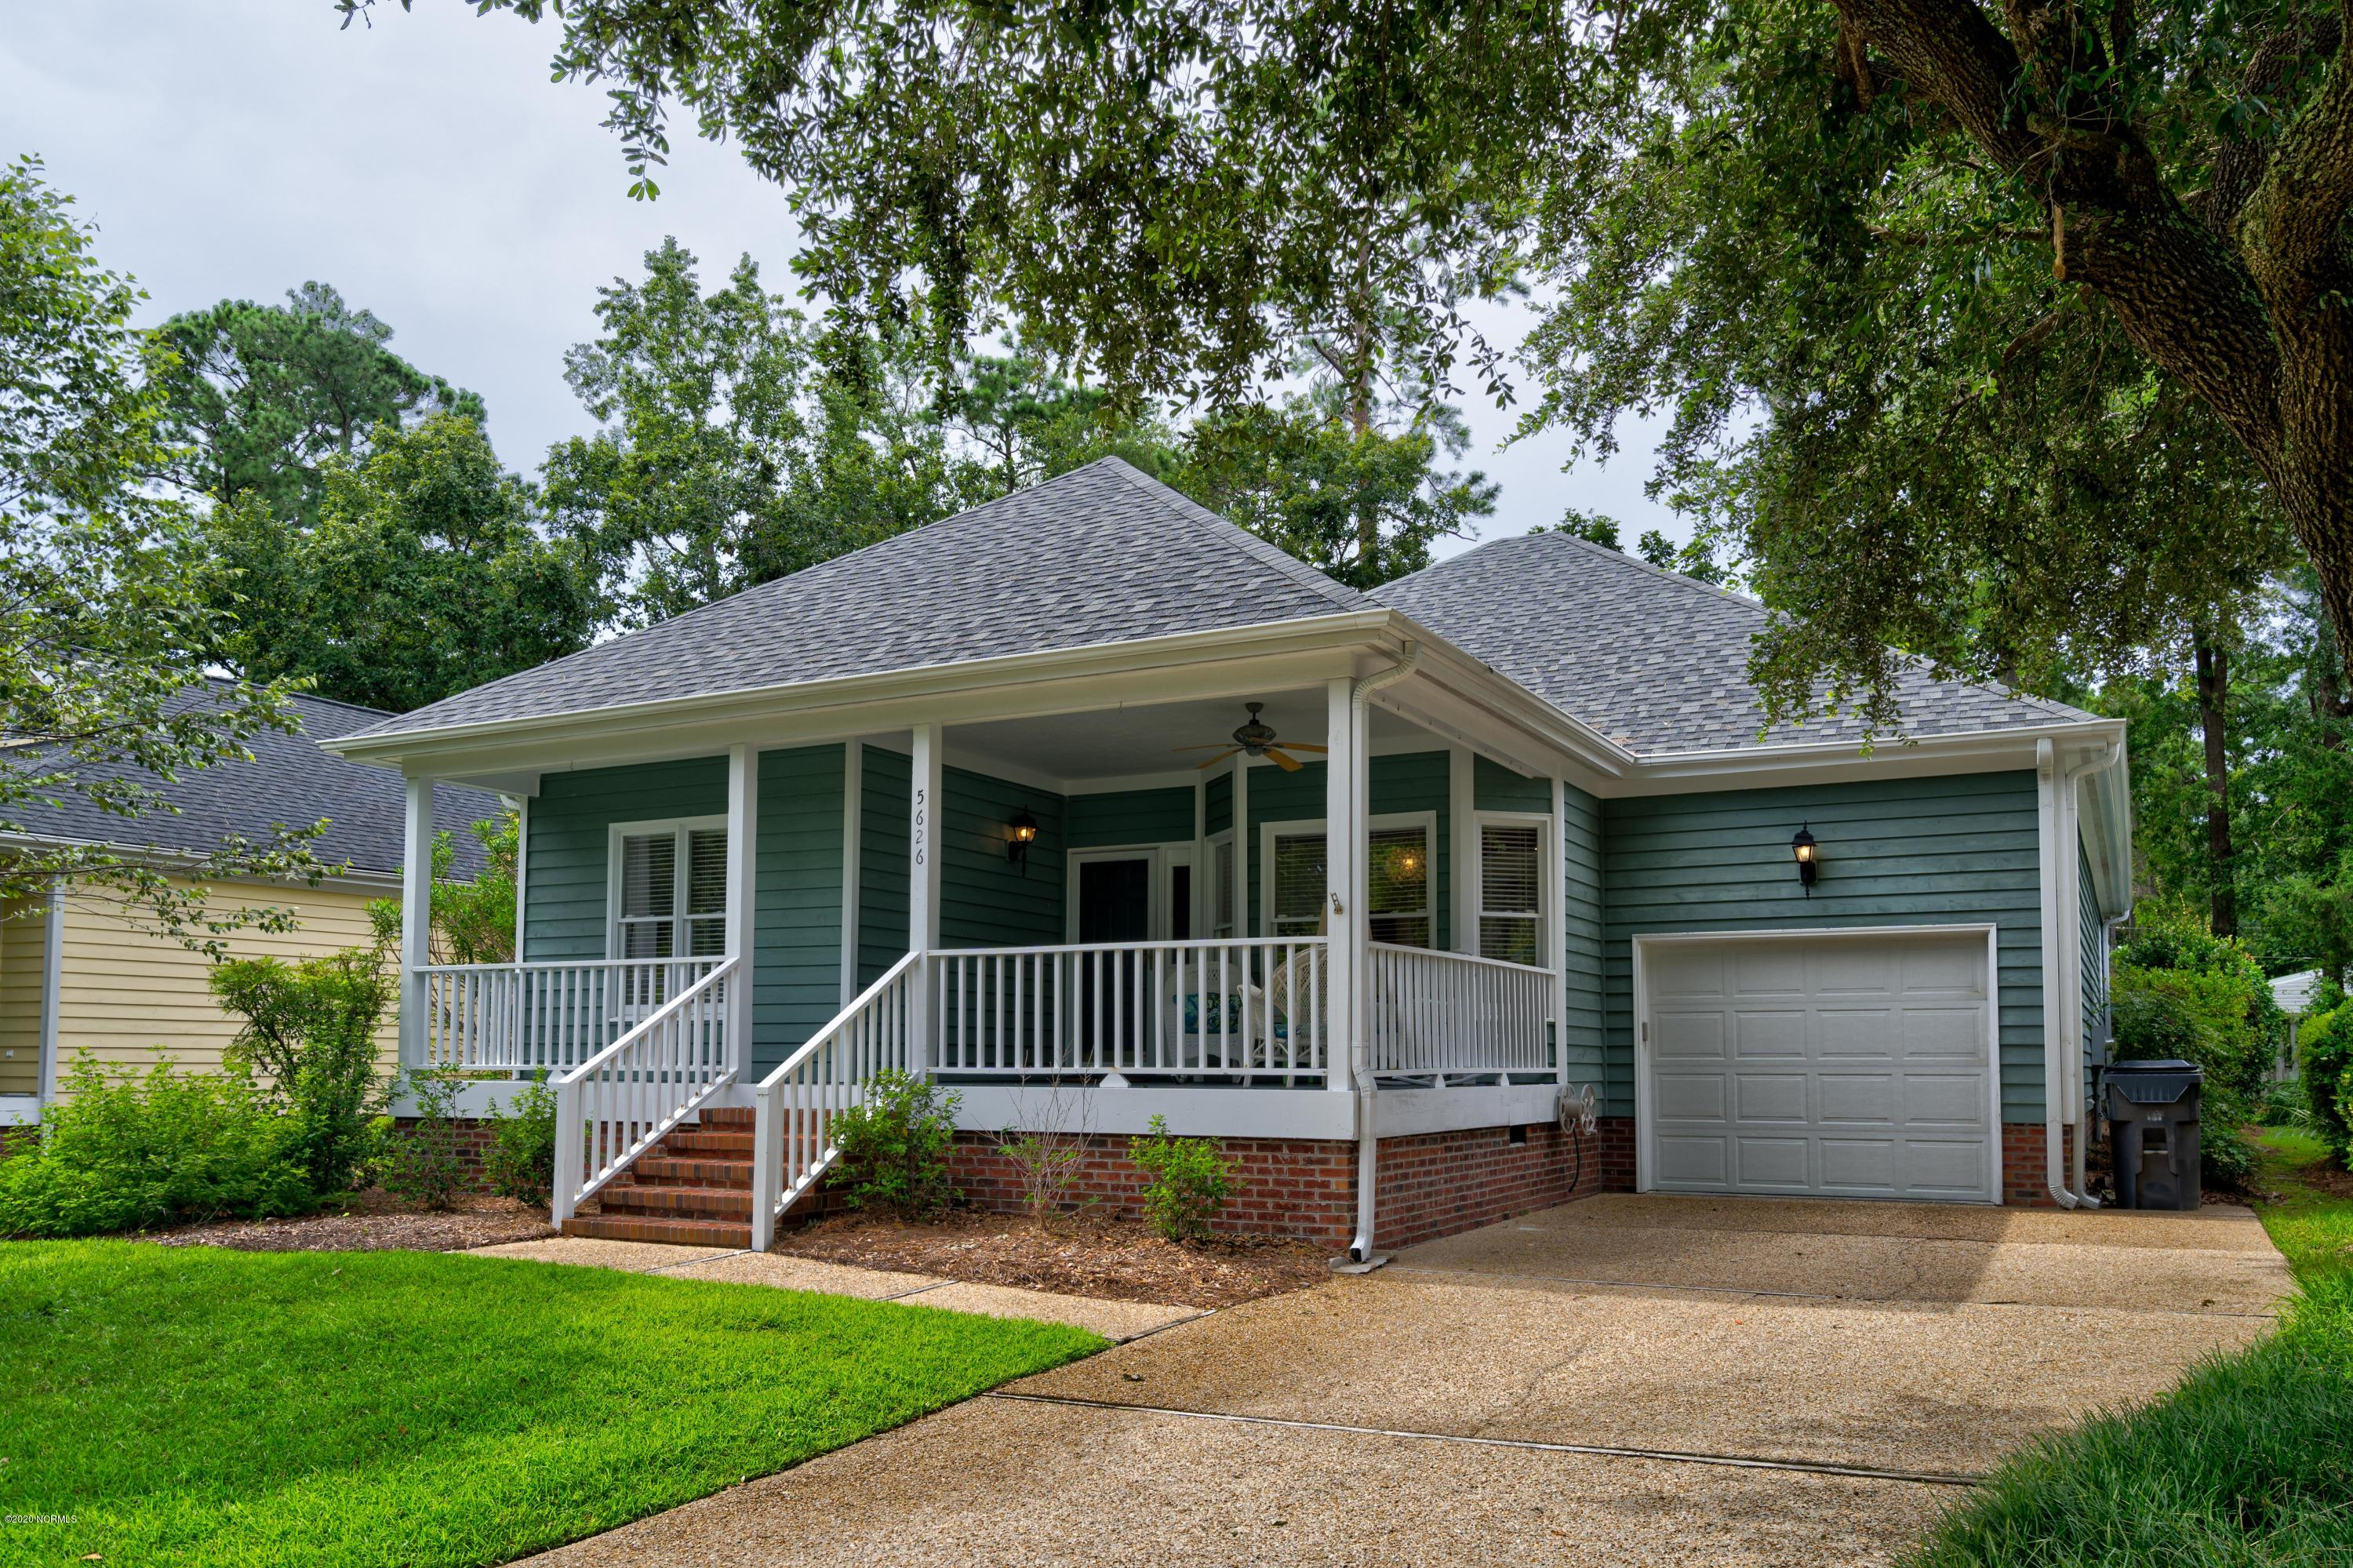 5626 Shell Road Village Drive, Wilmington, North Carolina 28403, 3 Bedrooms Bedrooms, ,2 BathroomsBathrooms,Residential,For Sale,Shell Road Village,100230818